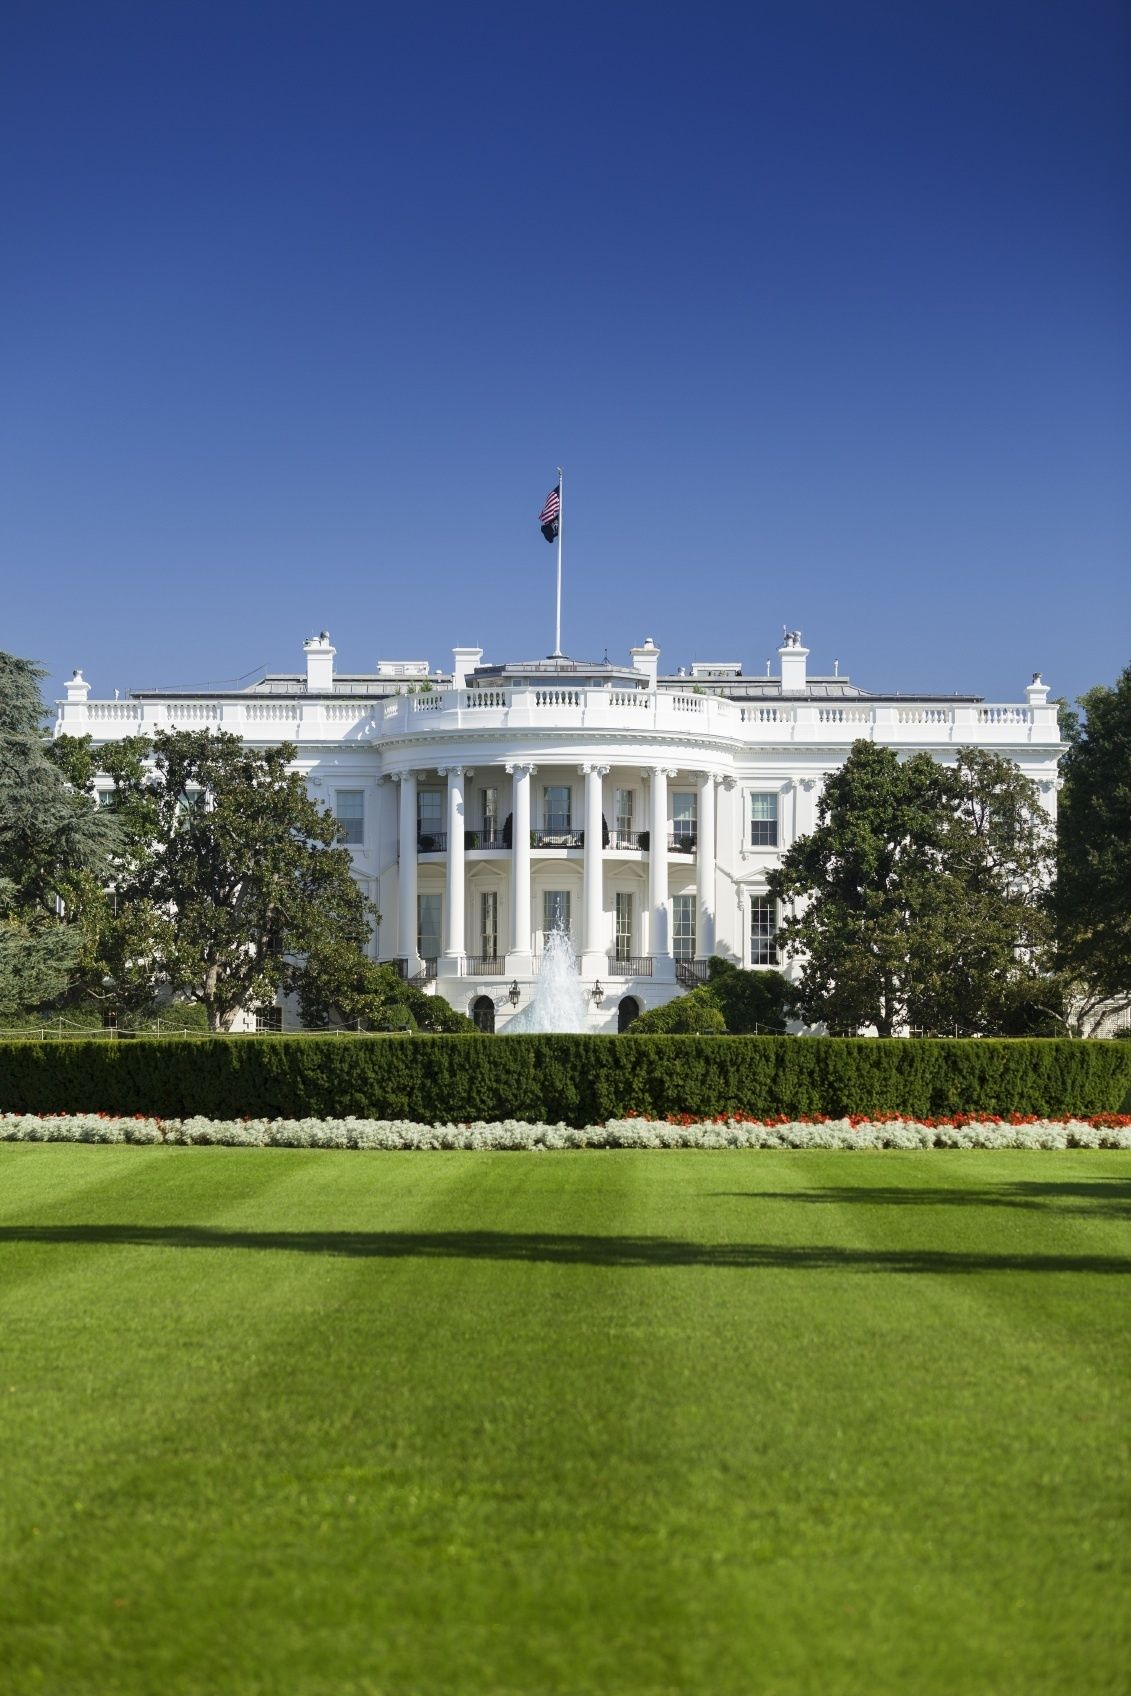 Join Discovery Education As We Launch Of The People: Live From The White  House,